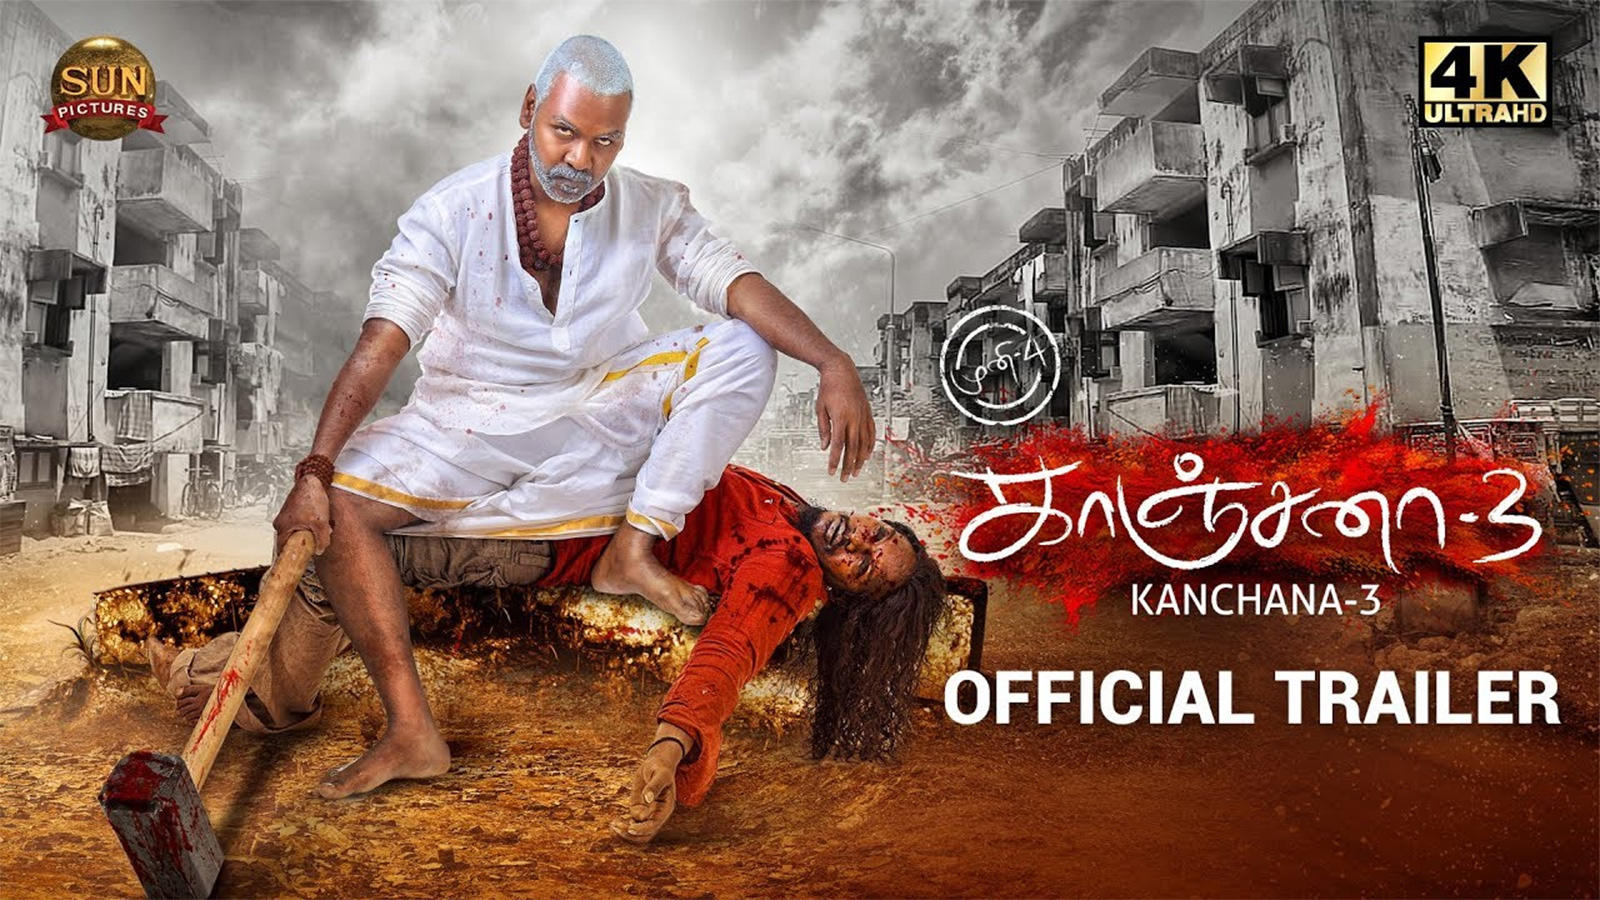 Kanchana 3 - Official Trailer | Tamil Movie News - Times of India